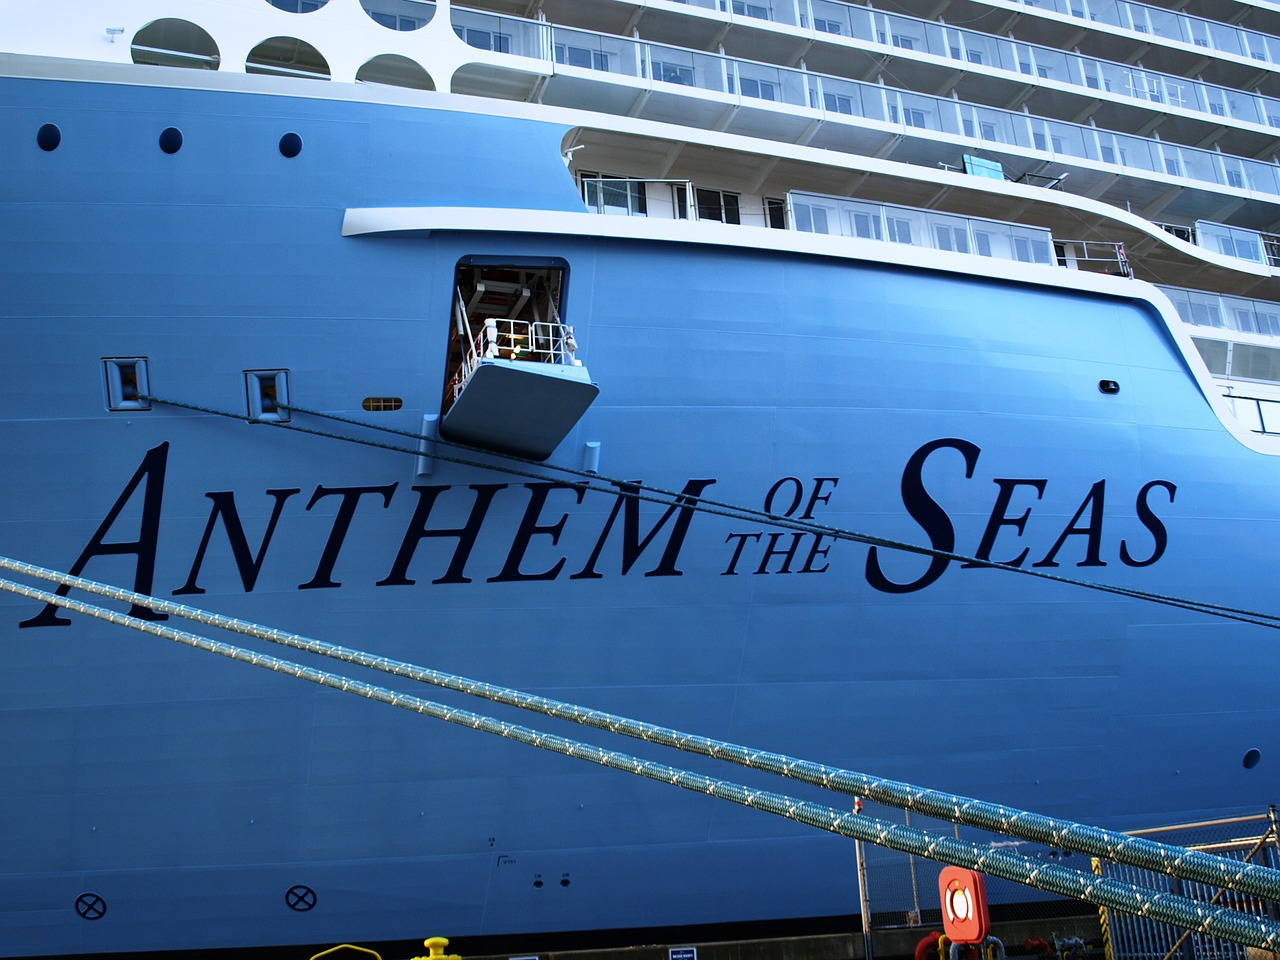 cruise ship anthem of the seas ozeanriese free photo